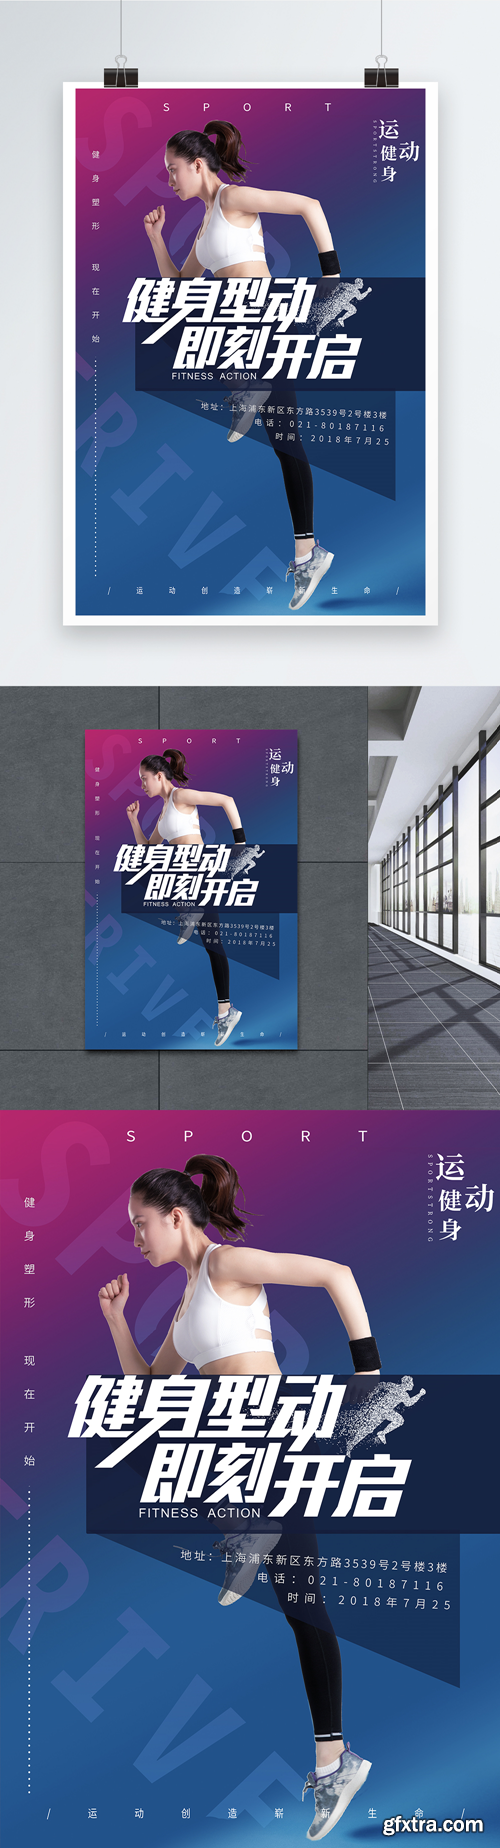 sports fitness poster